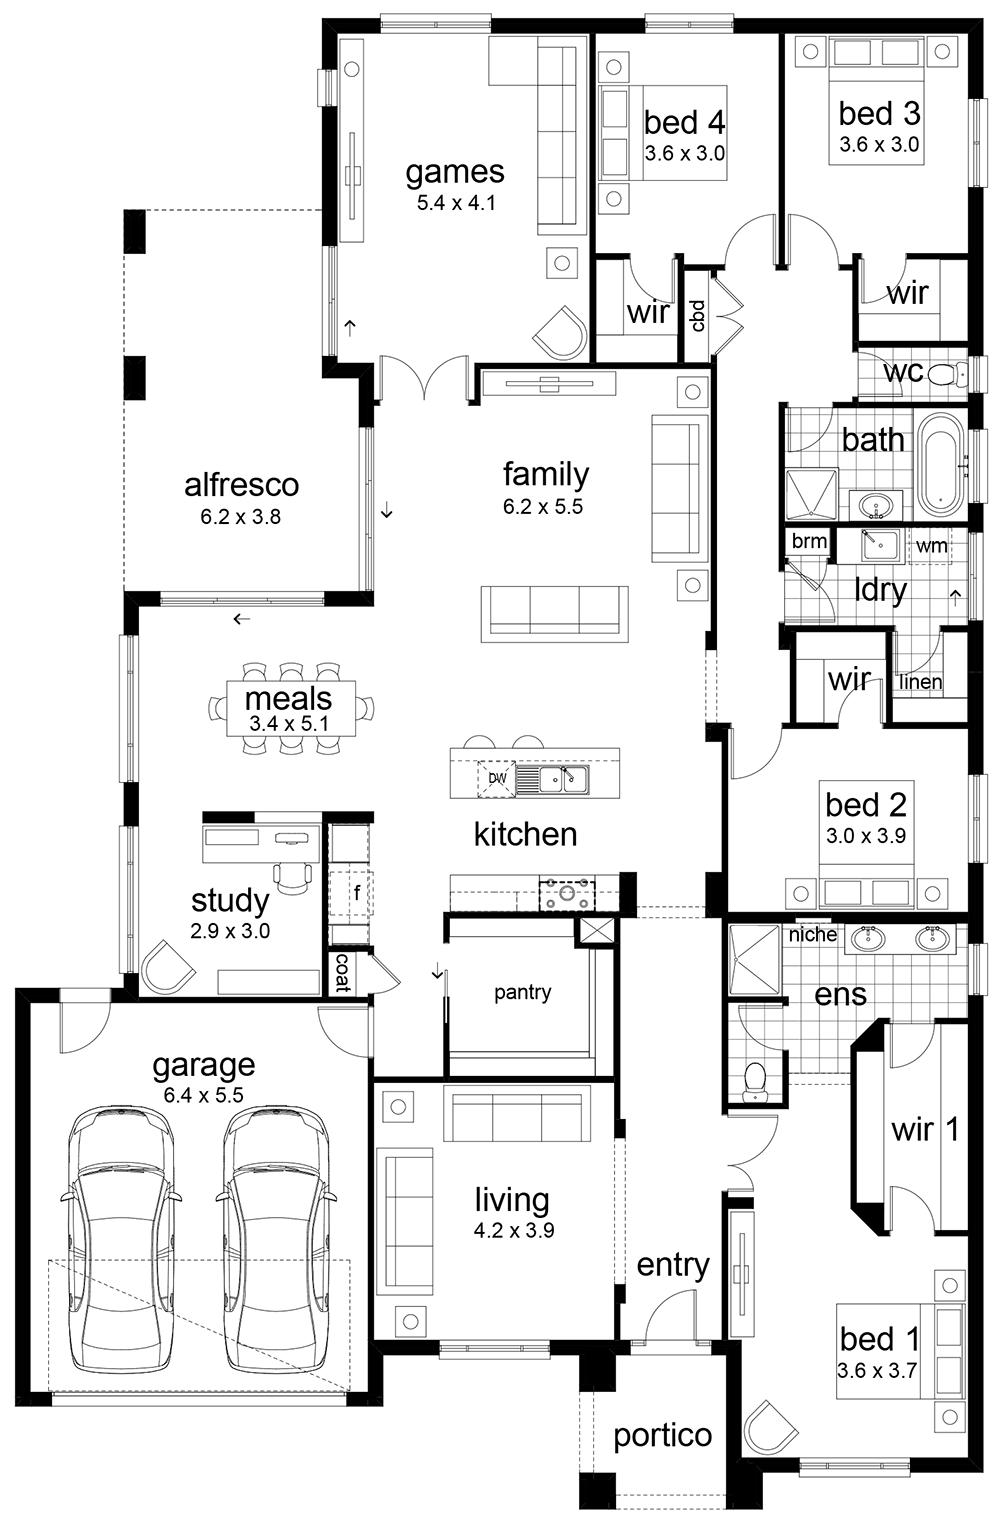 Floor Plan Friday 4 Bedroom Family Home Dream House Plans Floor Plan Layout Floor Plan 4 Bedroom